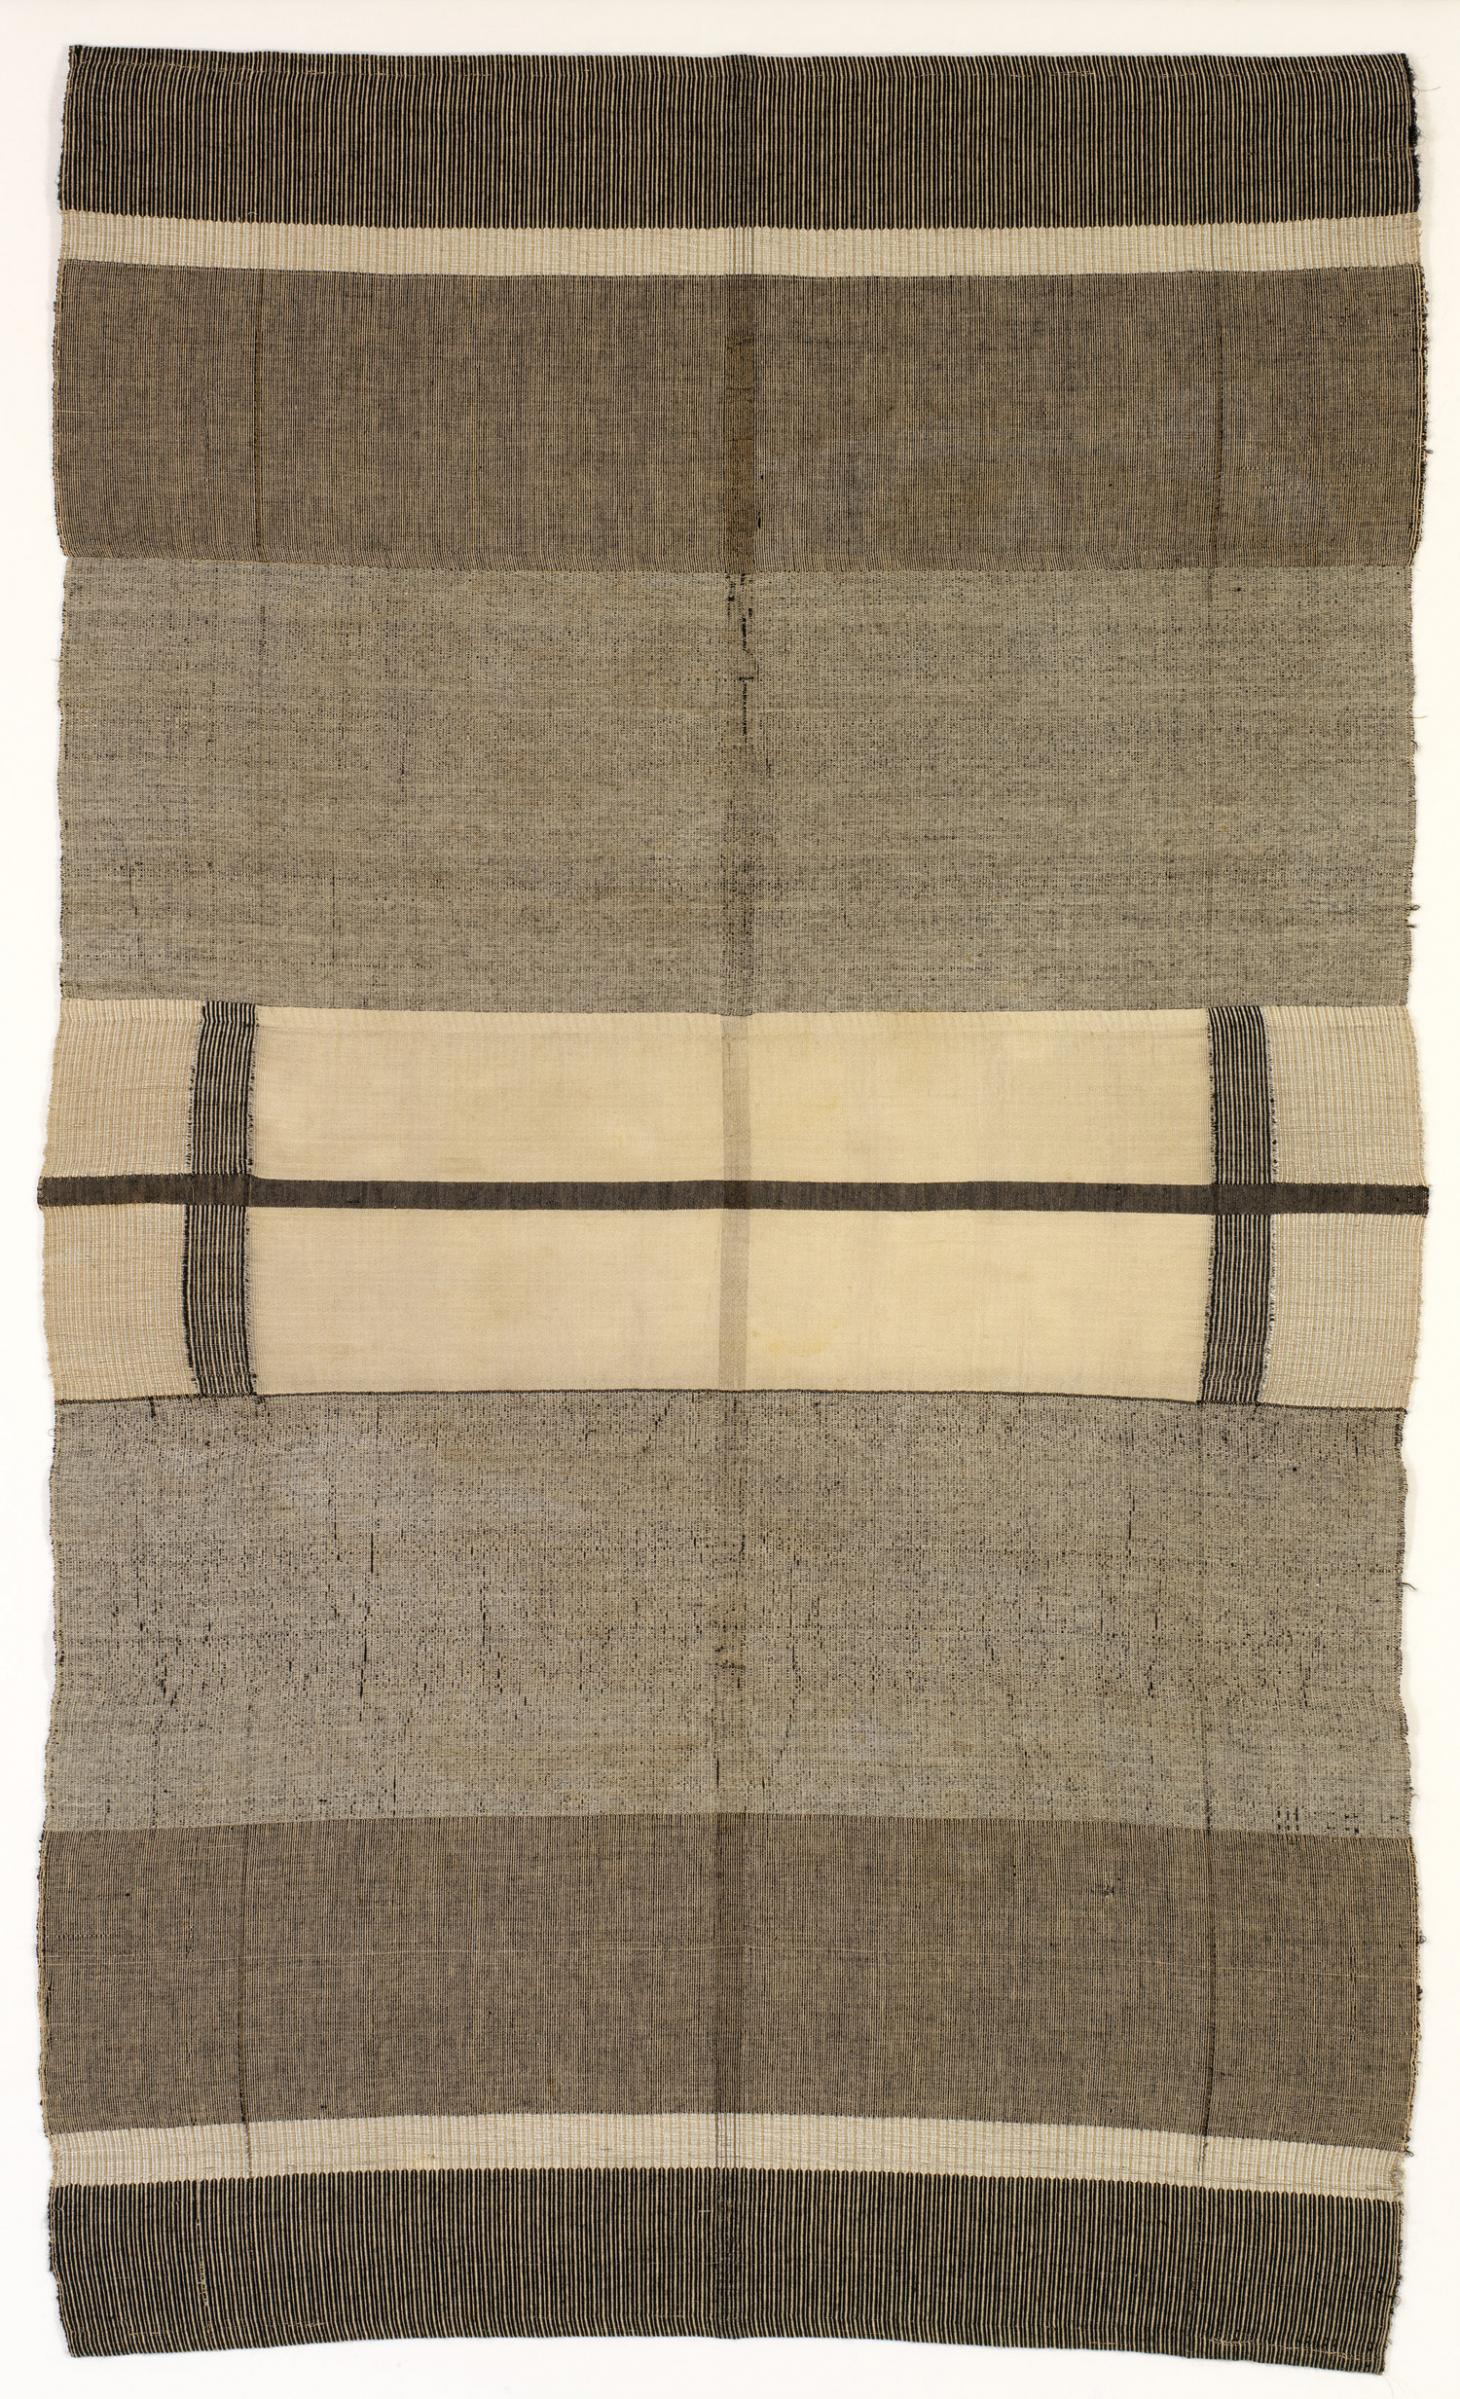 Anni Albers Wallhanging 1924 Cotton and silk